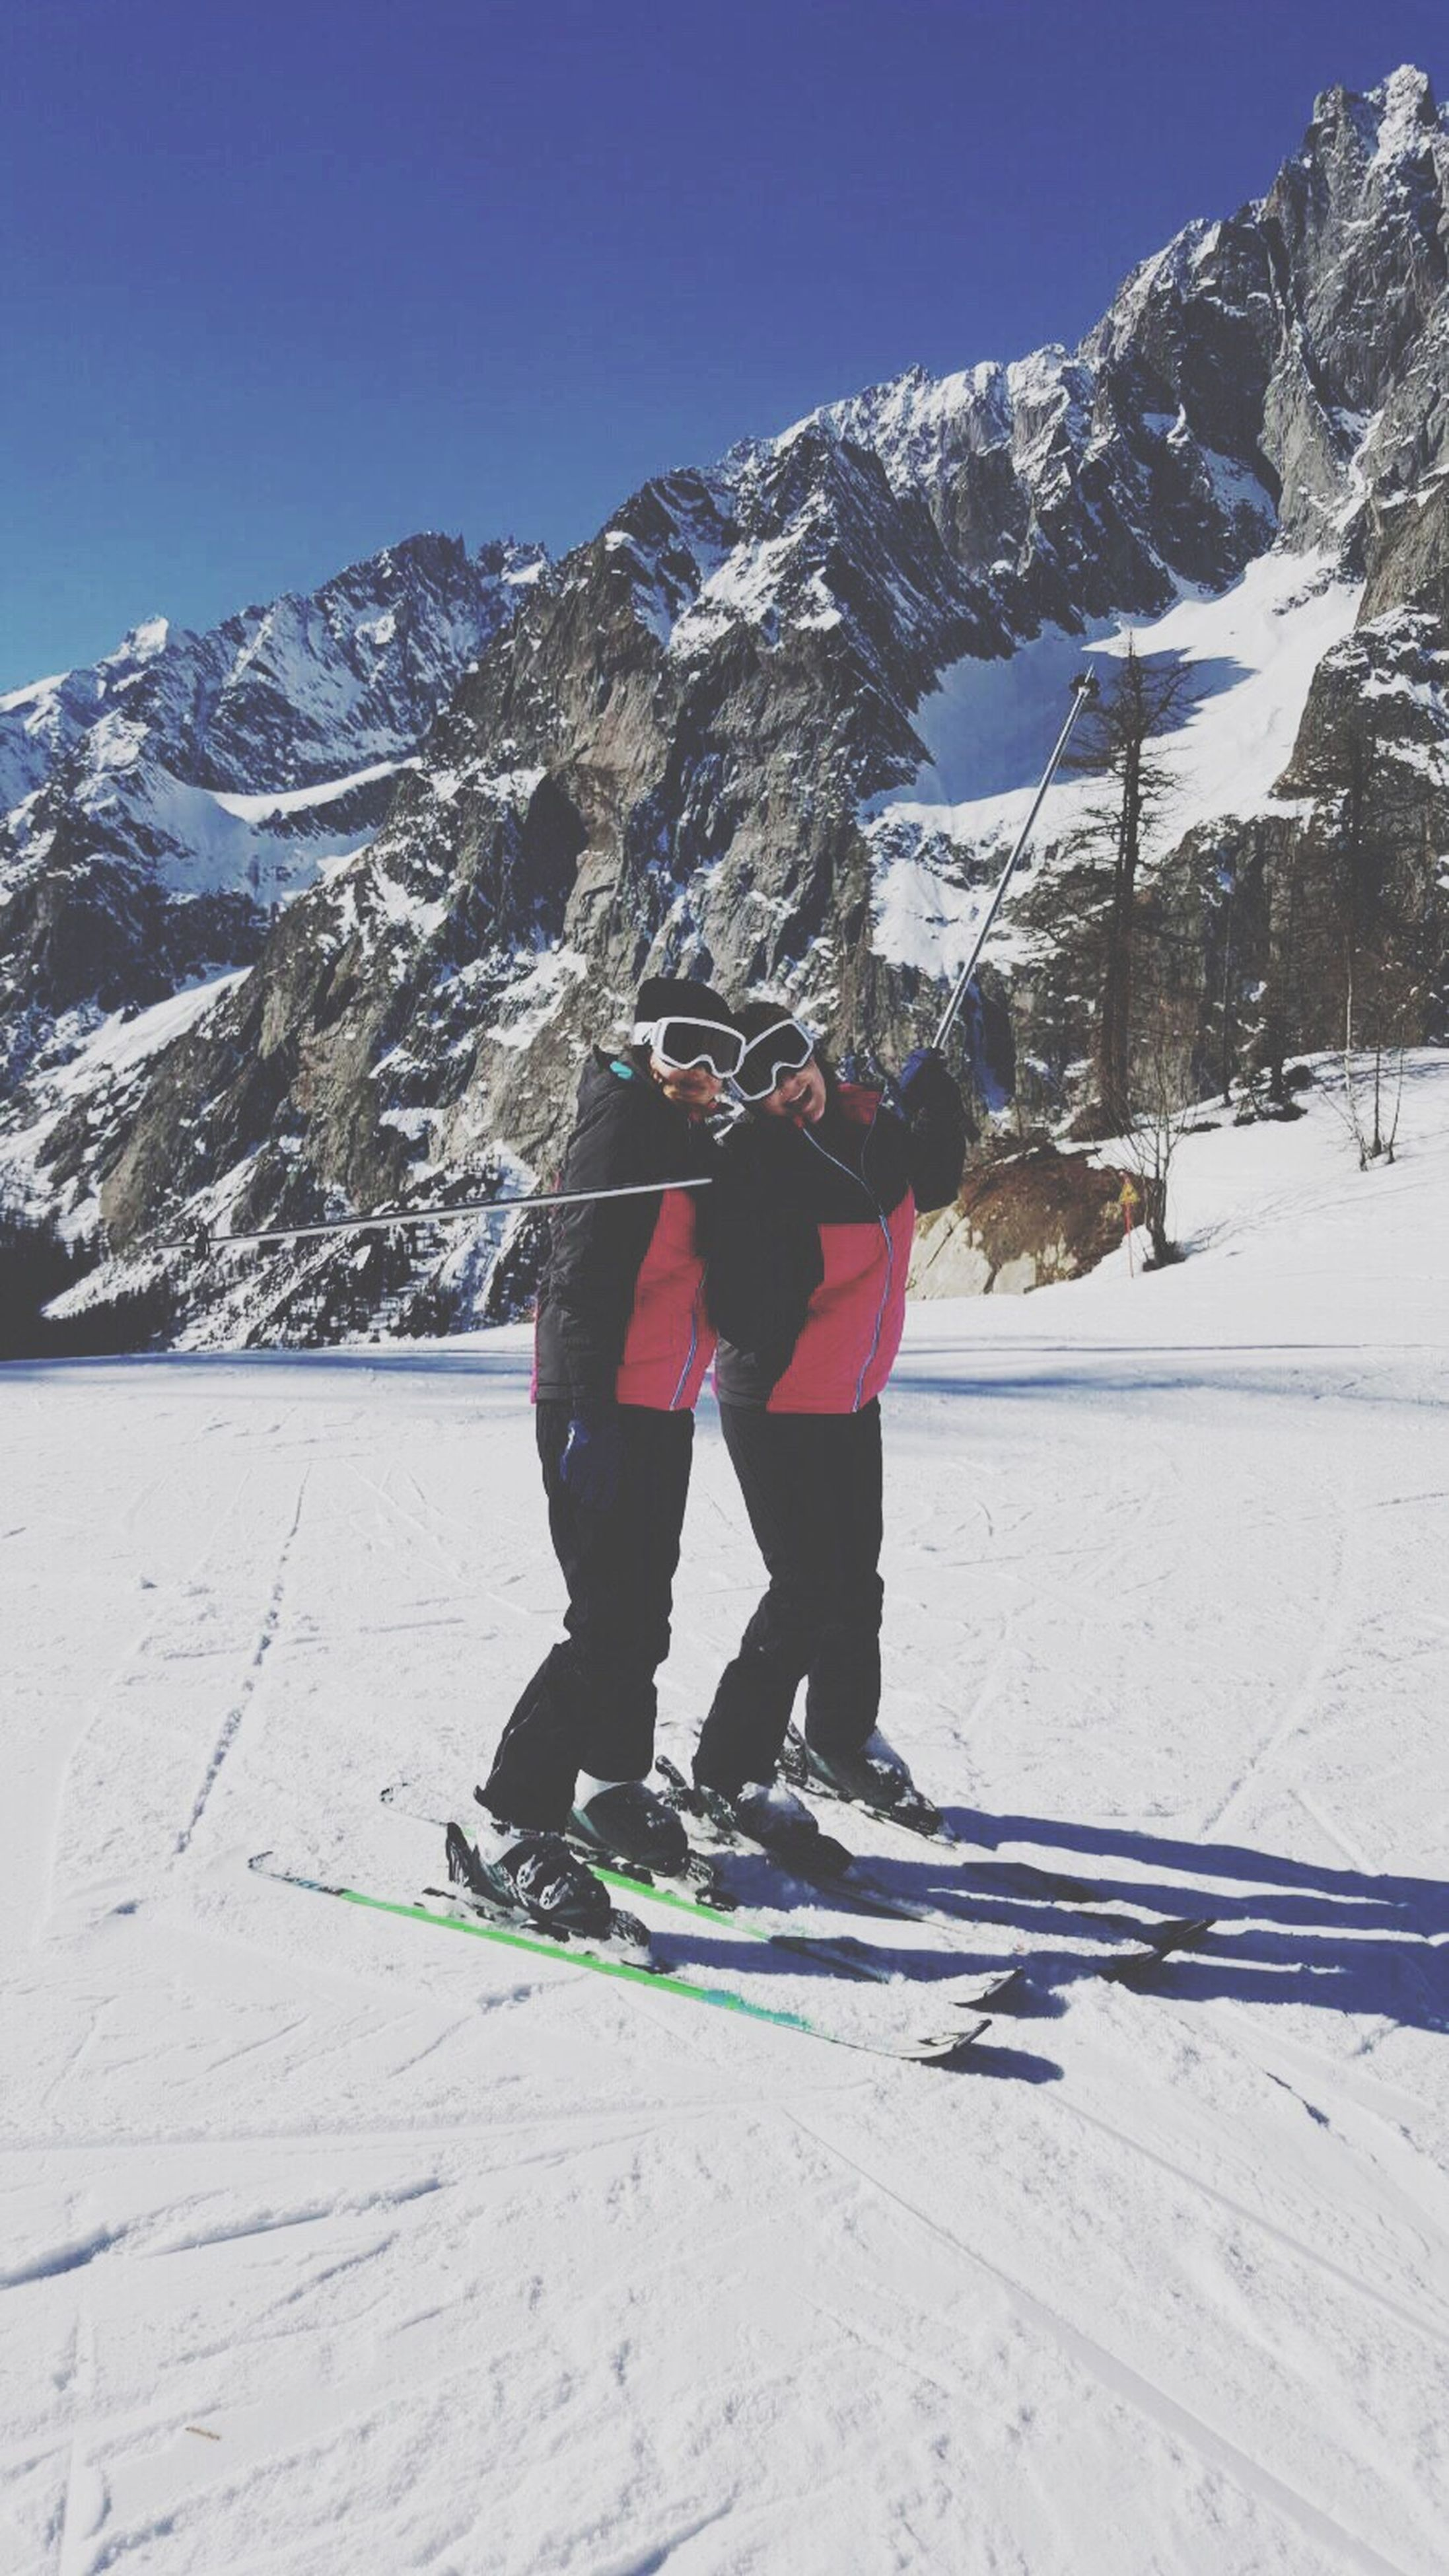 snow, winter, mountain, cold temperature, snowcapped mountain, winter sport, full length, two people, ski holiday, ski-wear, snowboarding, rear view, mountain range, outdoors, adventure, sport, skiing, people, happiness, adults only, day, adult, warm clothing, nature, only women, young adult, human body part, sky